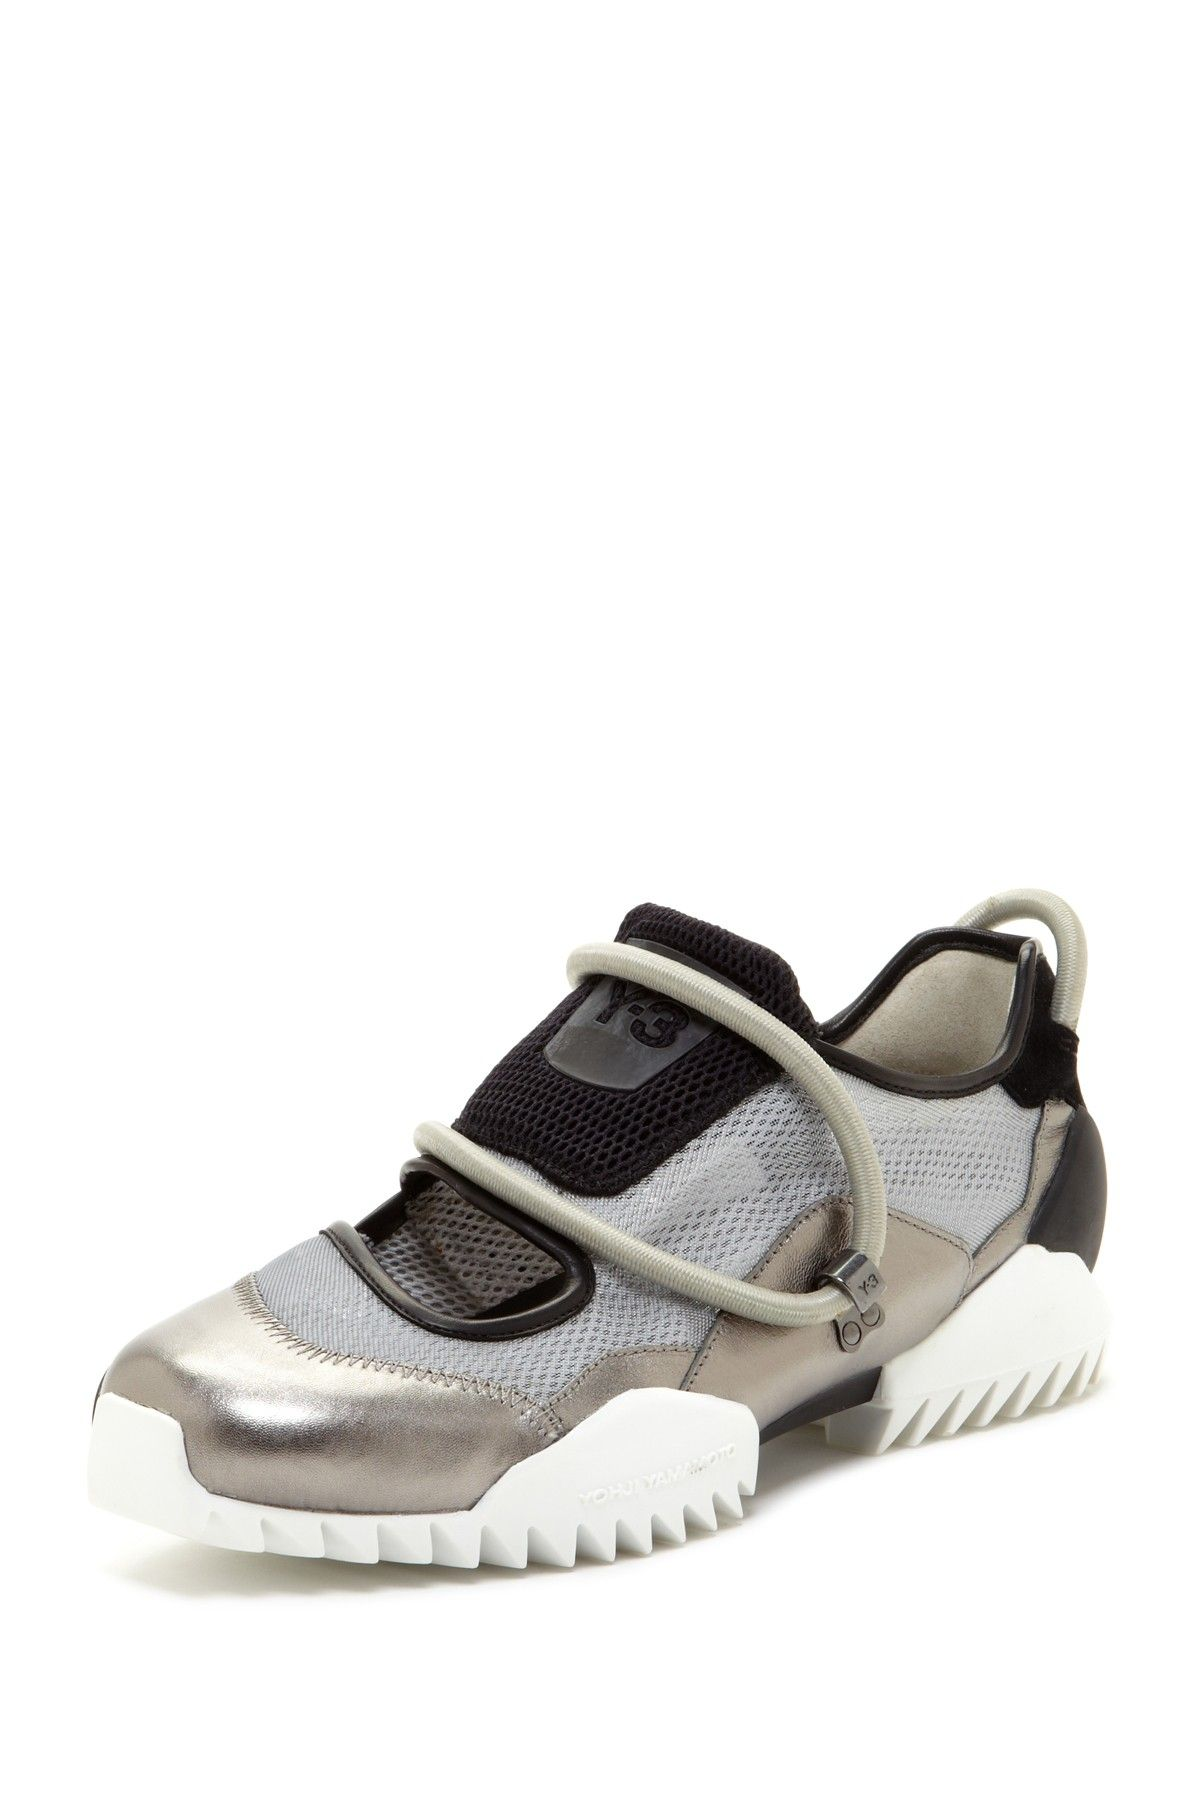 Y-3 By Adidas Sly Trainer Sneaker   Sneakers, Sneaker boots, Shoes